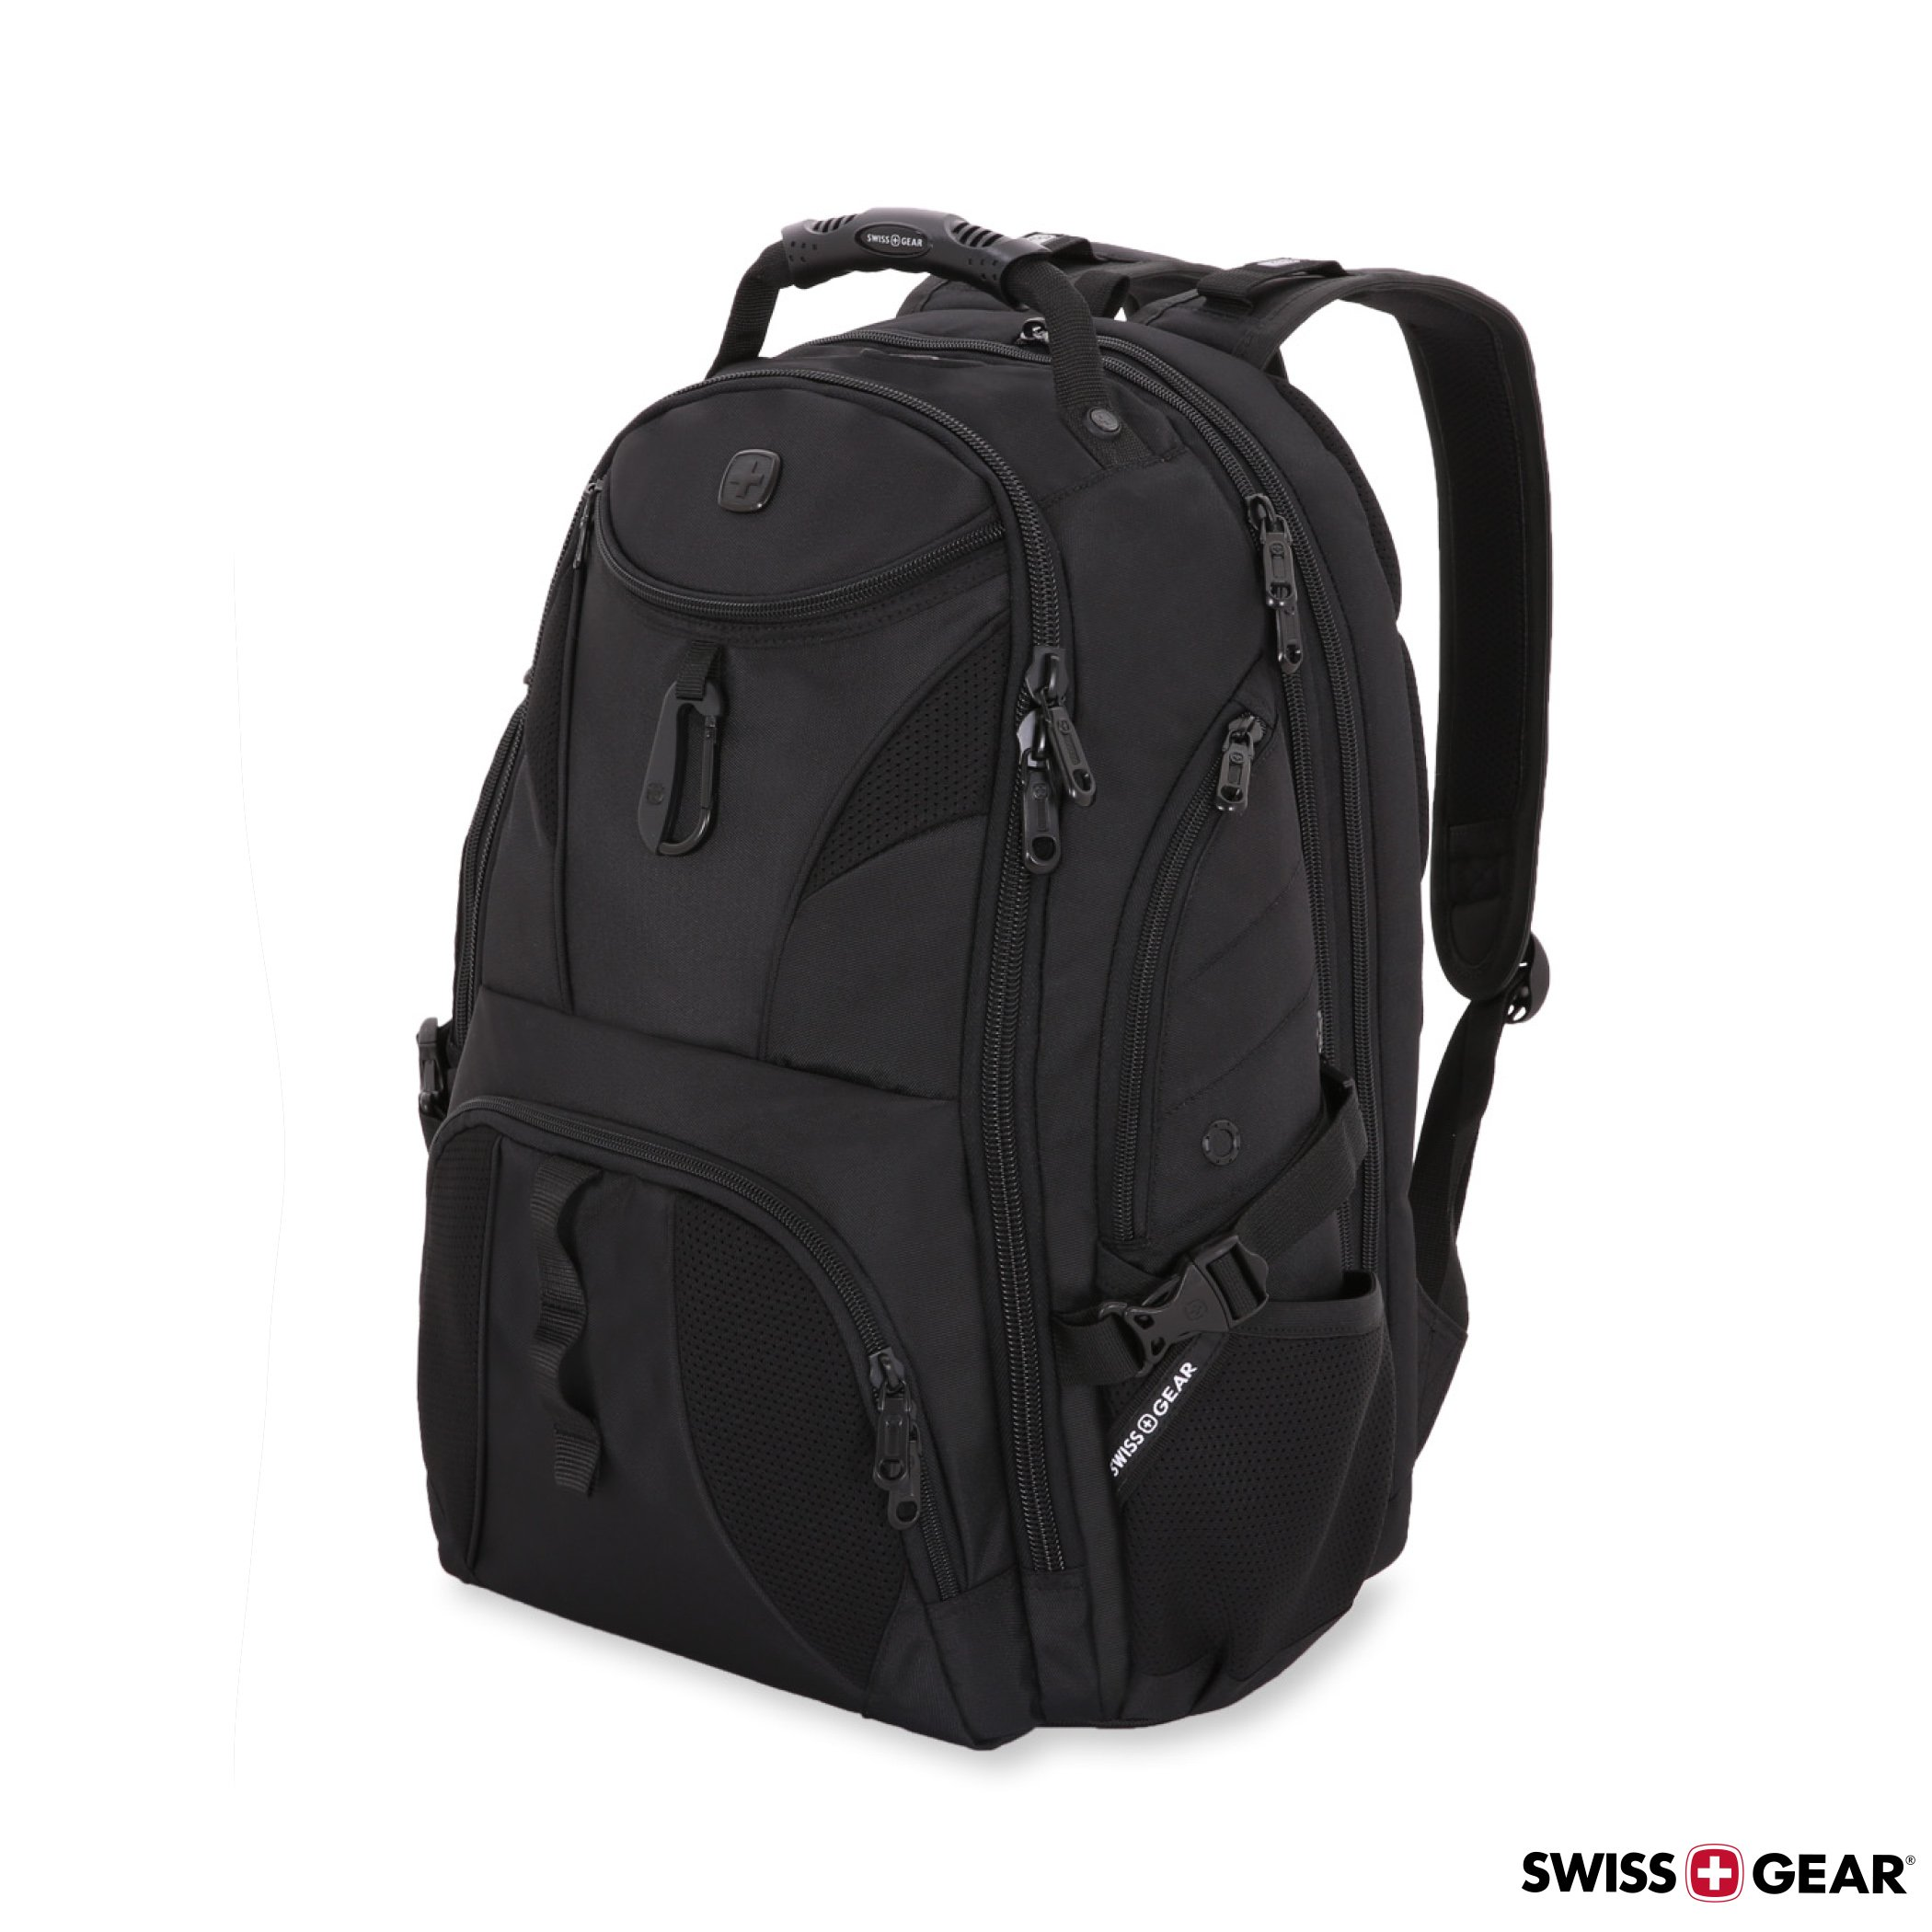 SWISSGEAR Travel Gear 1900 Scansmart TSA Laptop Backpack Black/Black